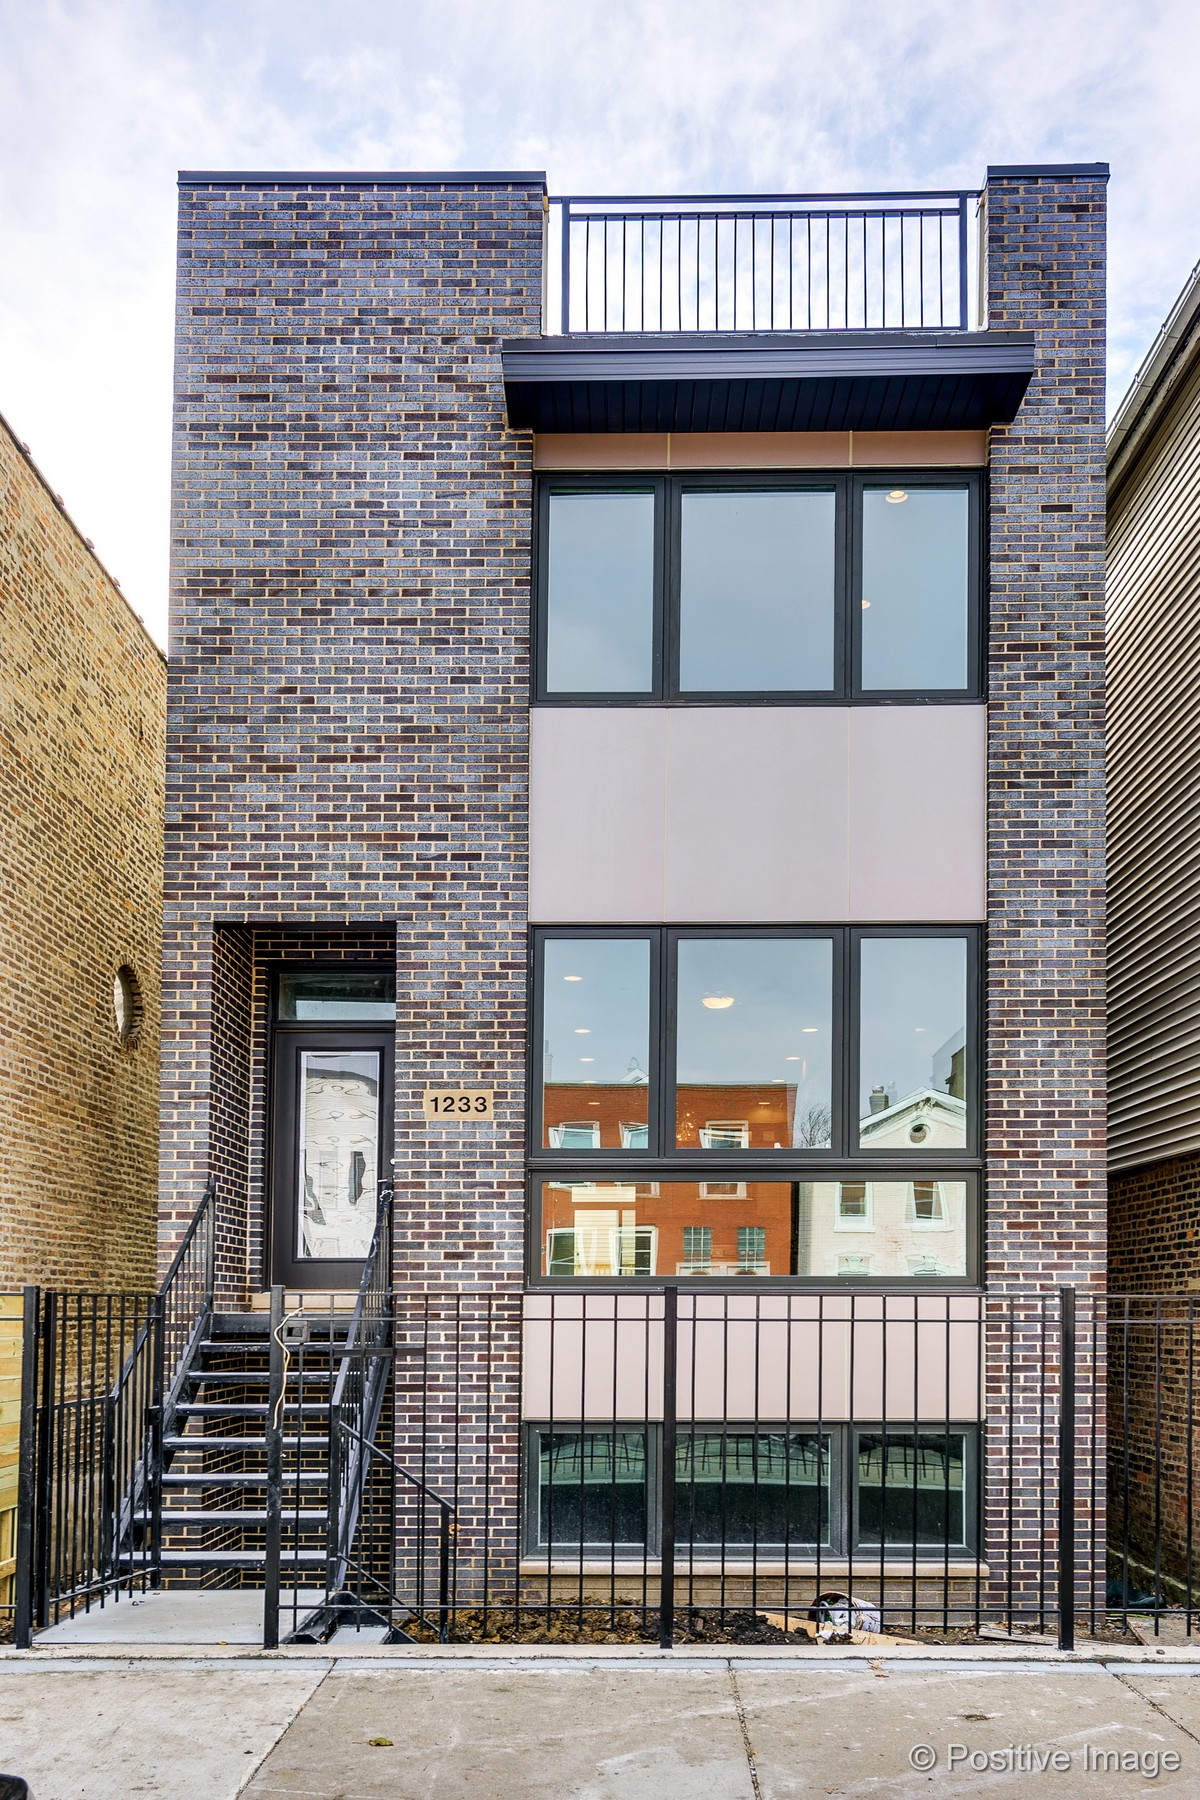 Single Family Home for Sale at Logan Square New Construction Single-Family 2108 N. Bingham Street Logan Square, Chicago, Illinois, 60647 United States